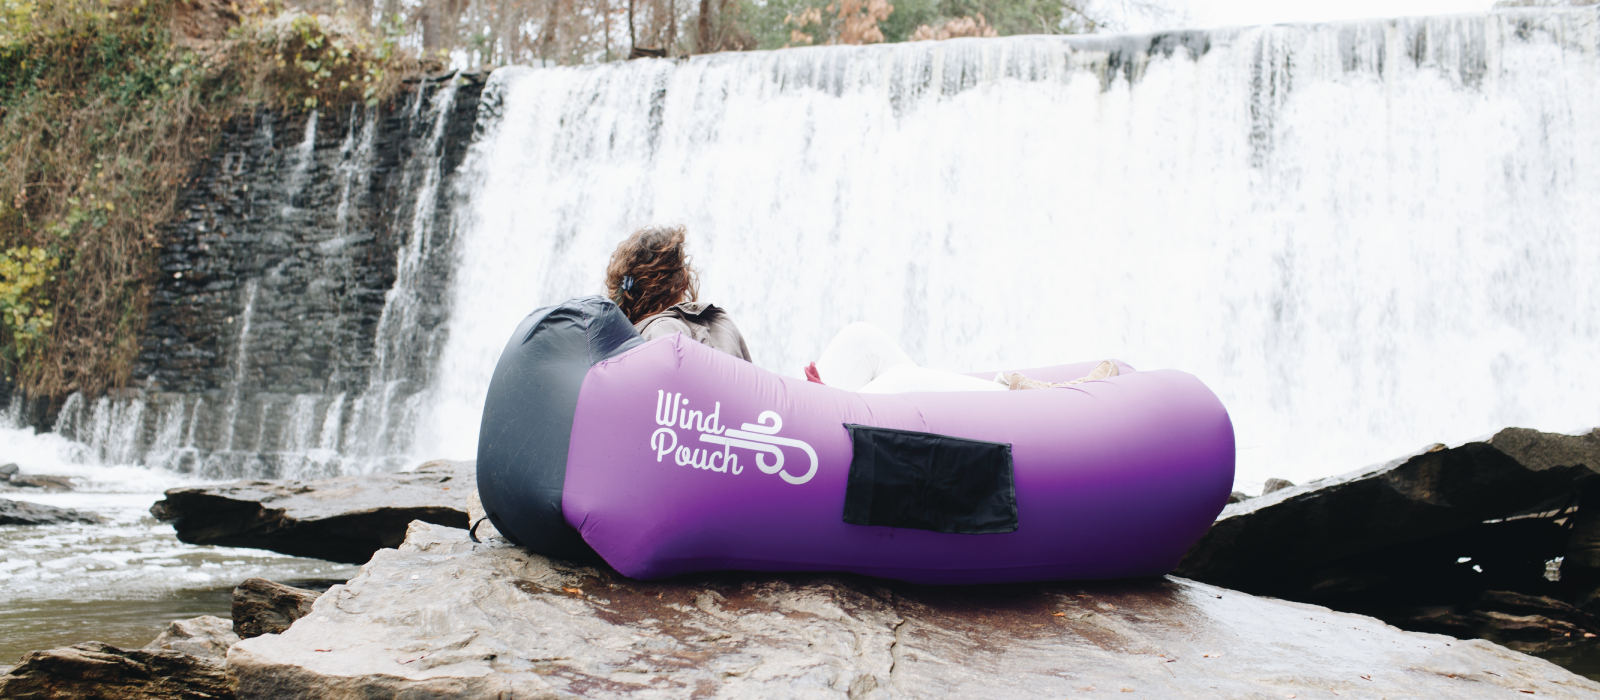 WindPouch GO Royal Purple Waterfall Inflatable Ground Hammock Blow Up Seat Air Lounger Inflatable Couch